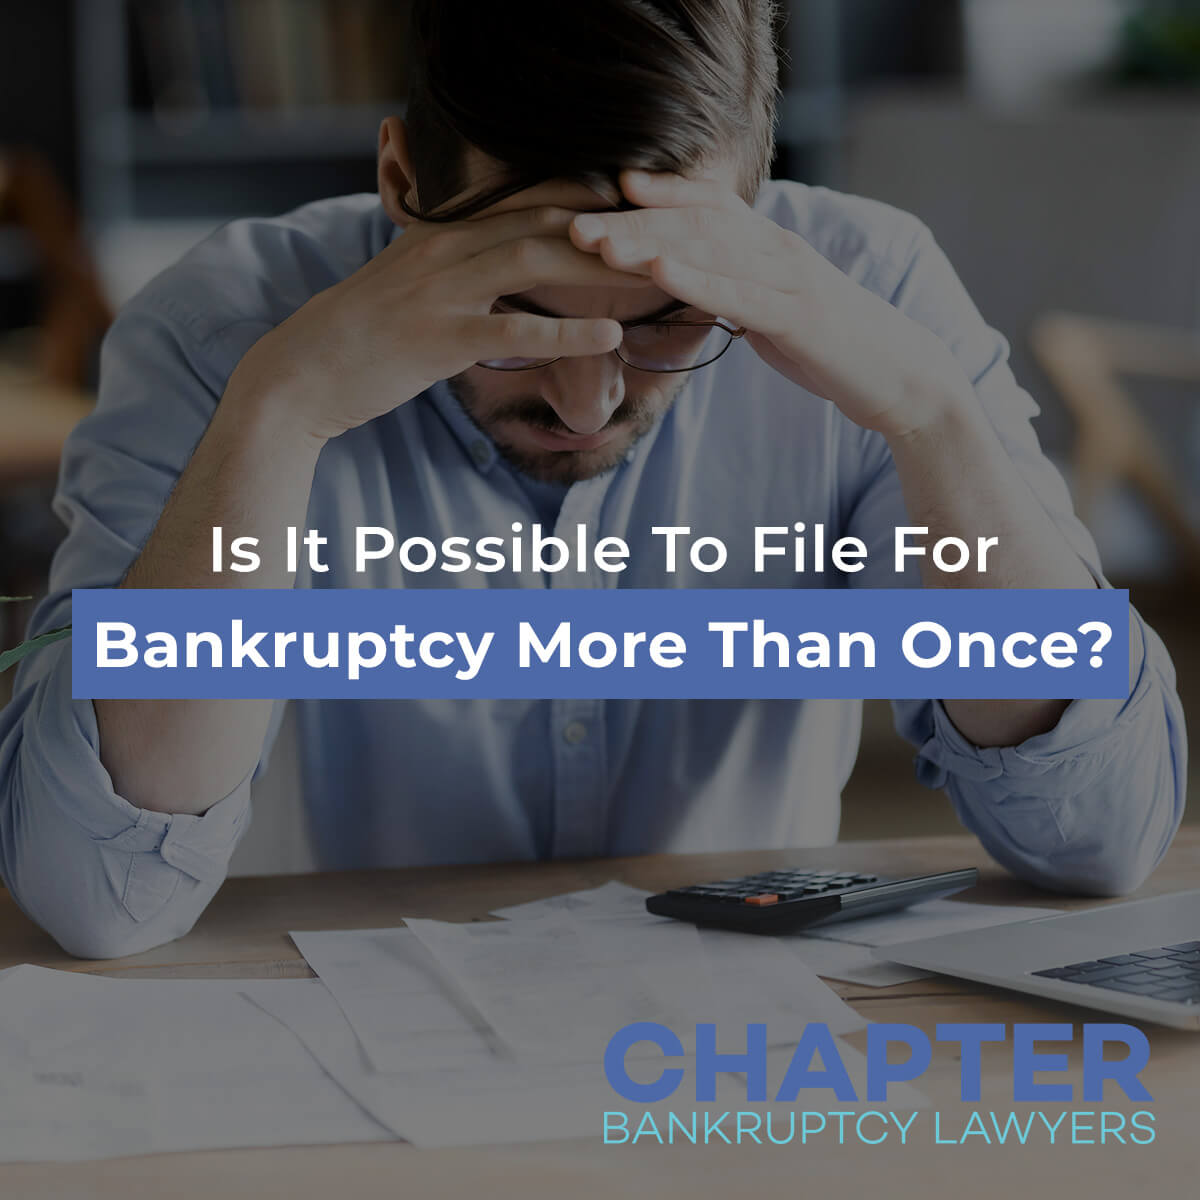 Is It Possible To FIle For Bankruptcy More Than Once?